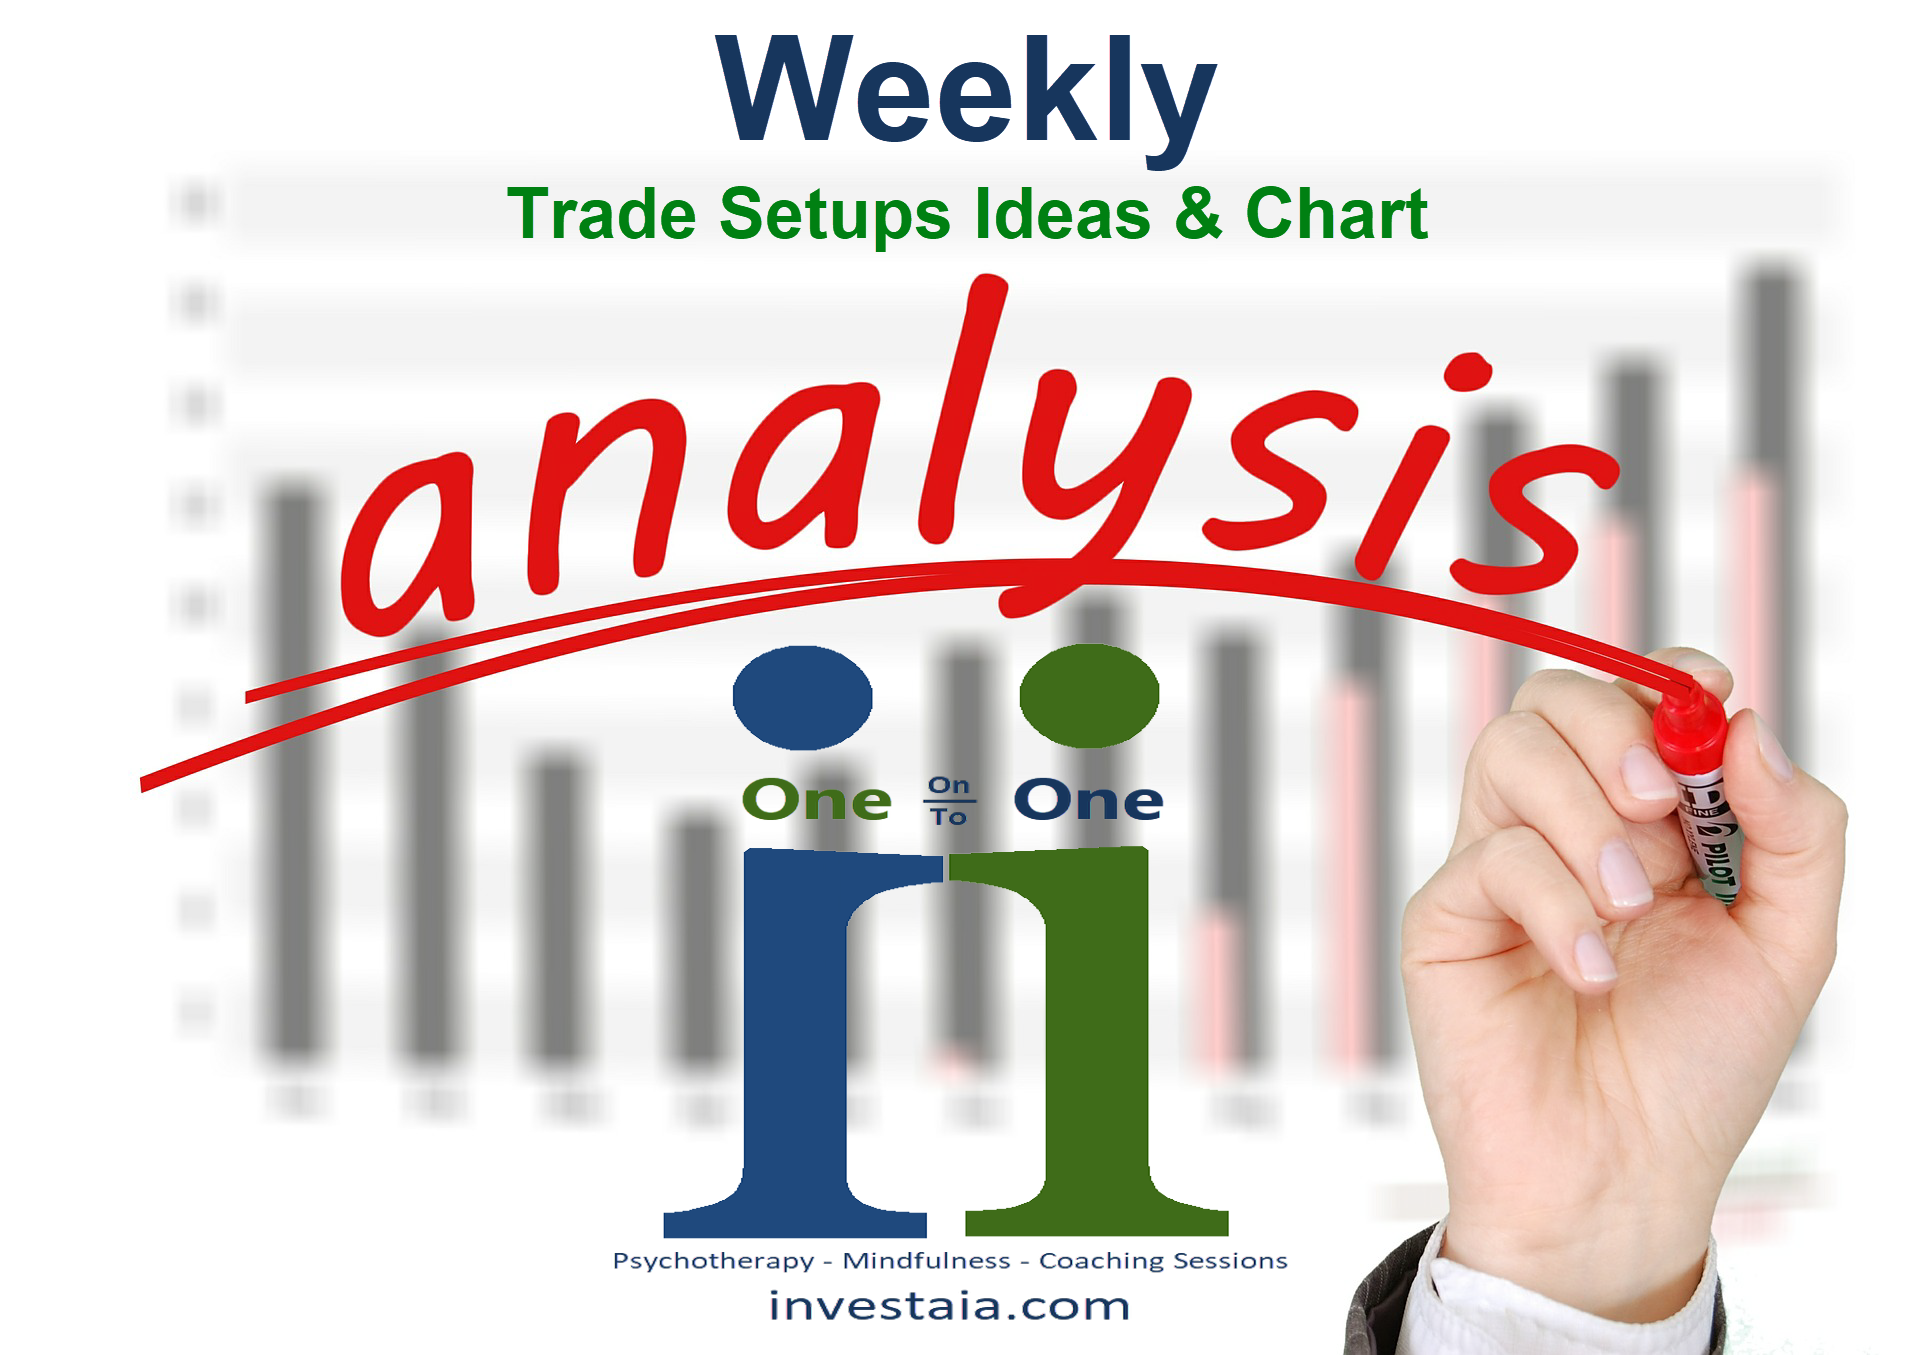 #Our Trading View & Plan for Week 19 (06-10-05-19)